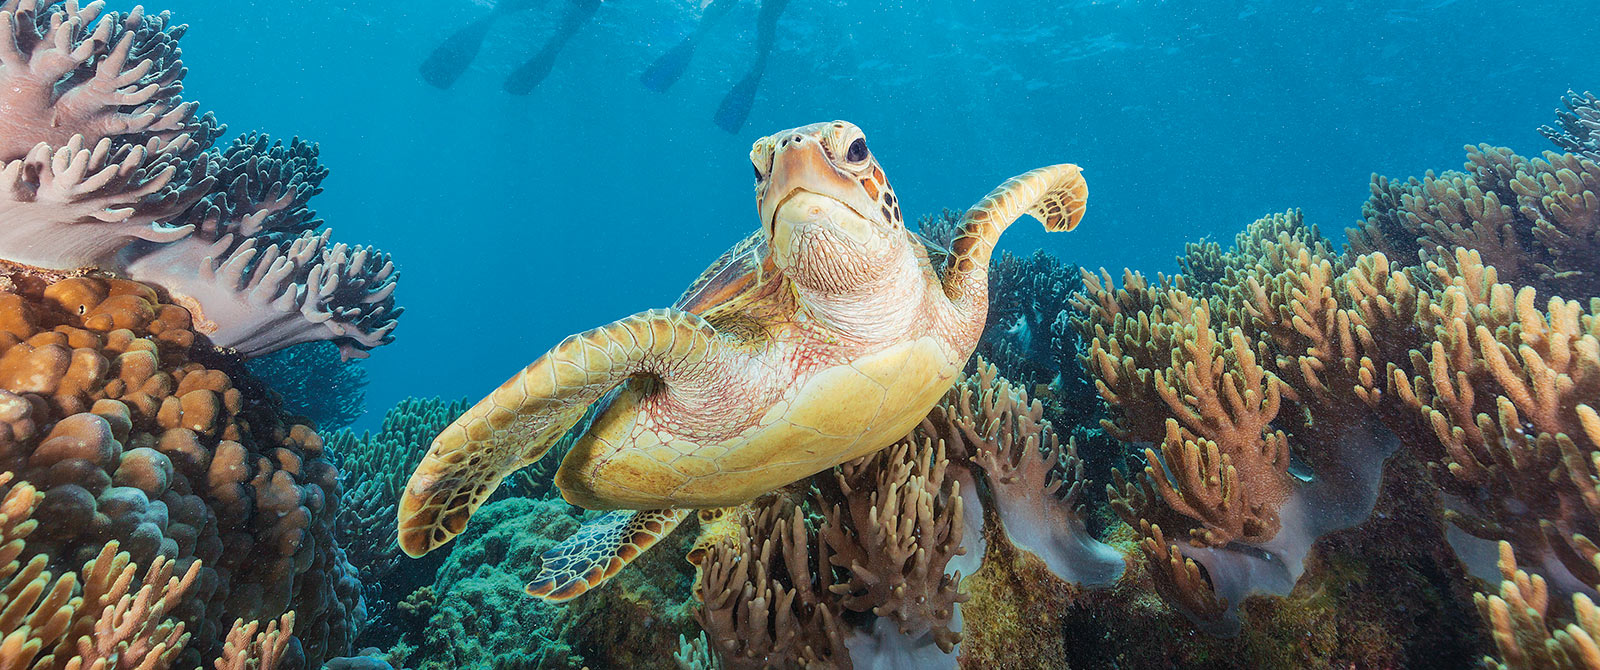 Sea Turtle in the Great Barrier Reef, Australia